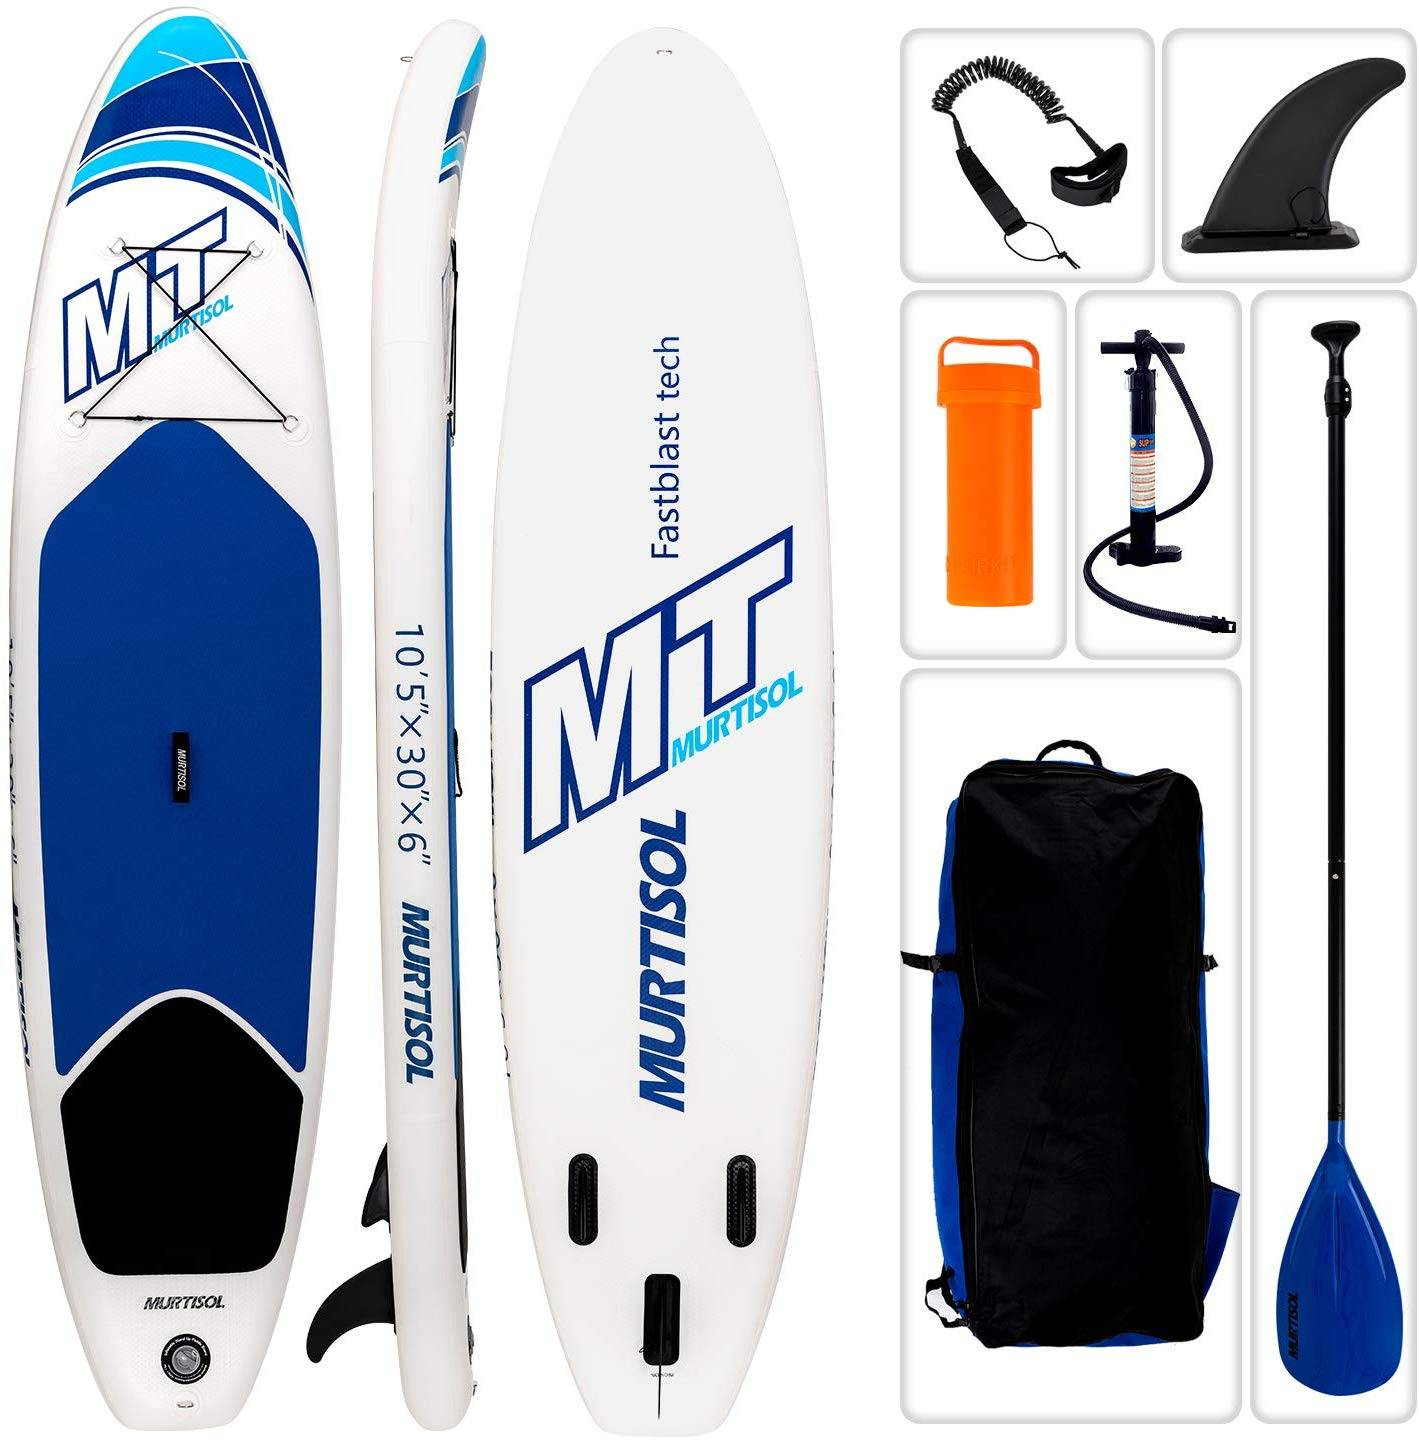 Murtisol Upgrade 11' SUP